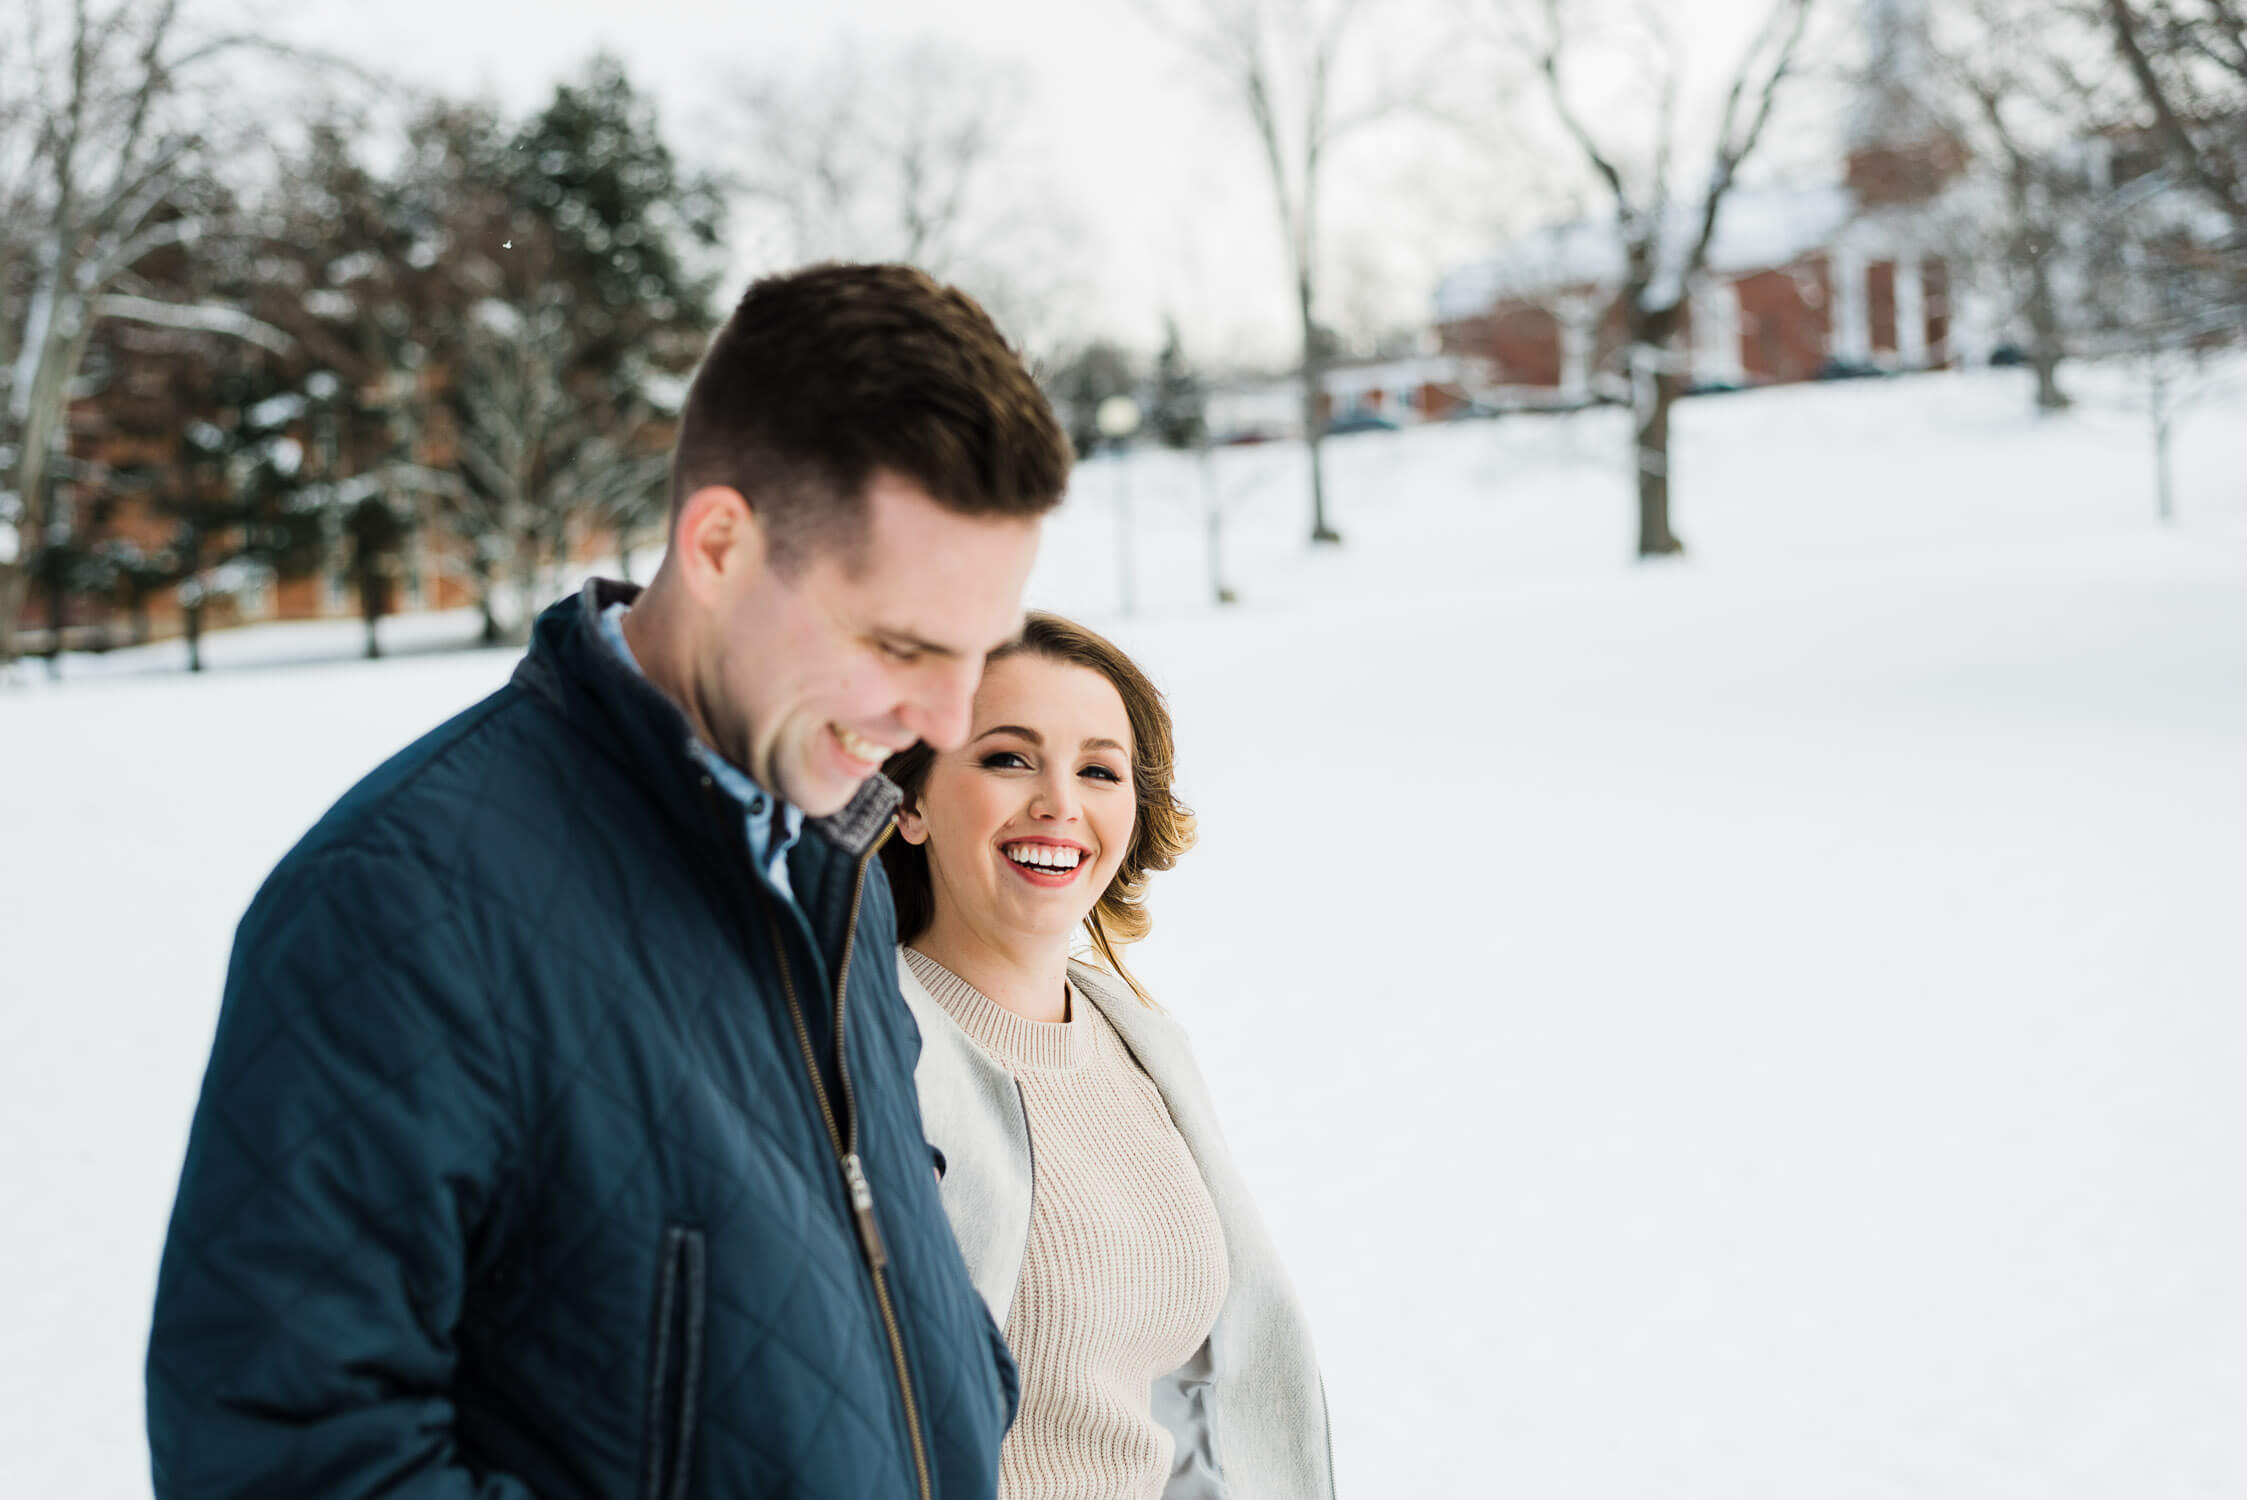 Woman laughing at her partner as they walk through the winter snow